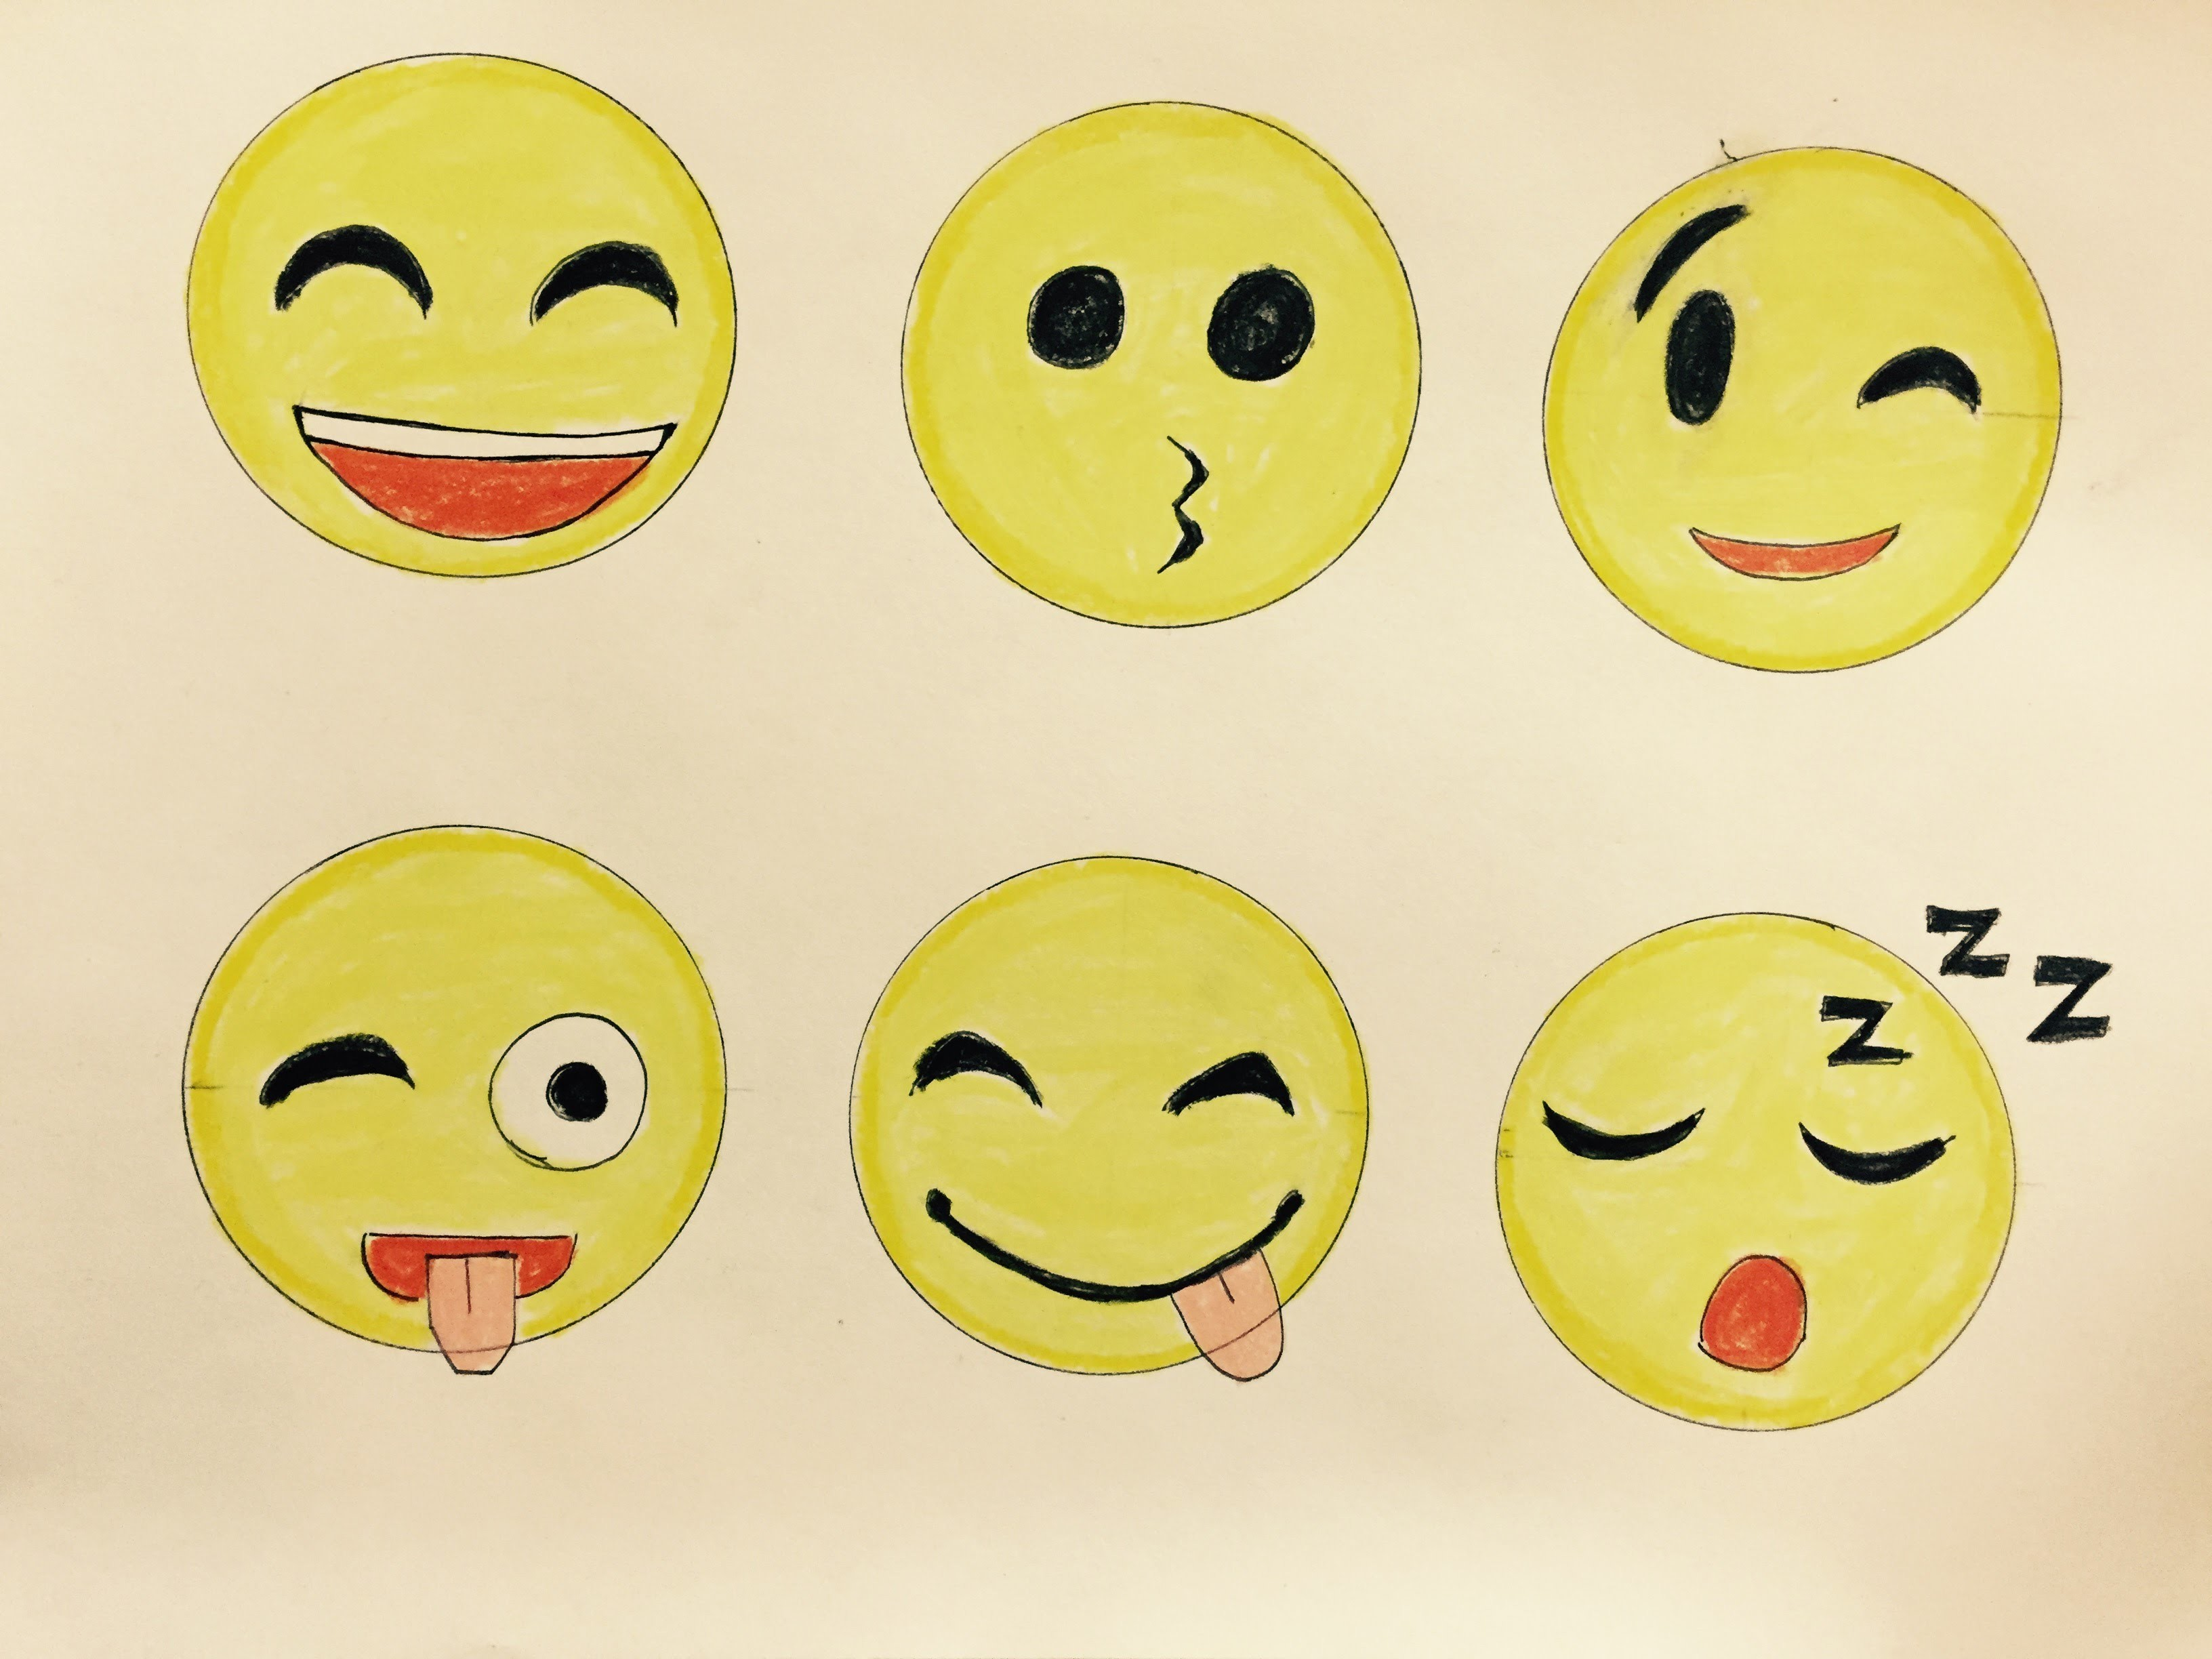 3264x2448 How To Draw Emojis Step By Step (9.23. 2017), My Crafts And Diy